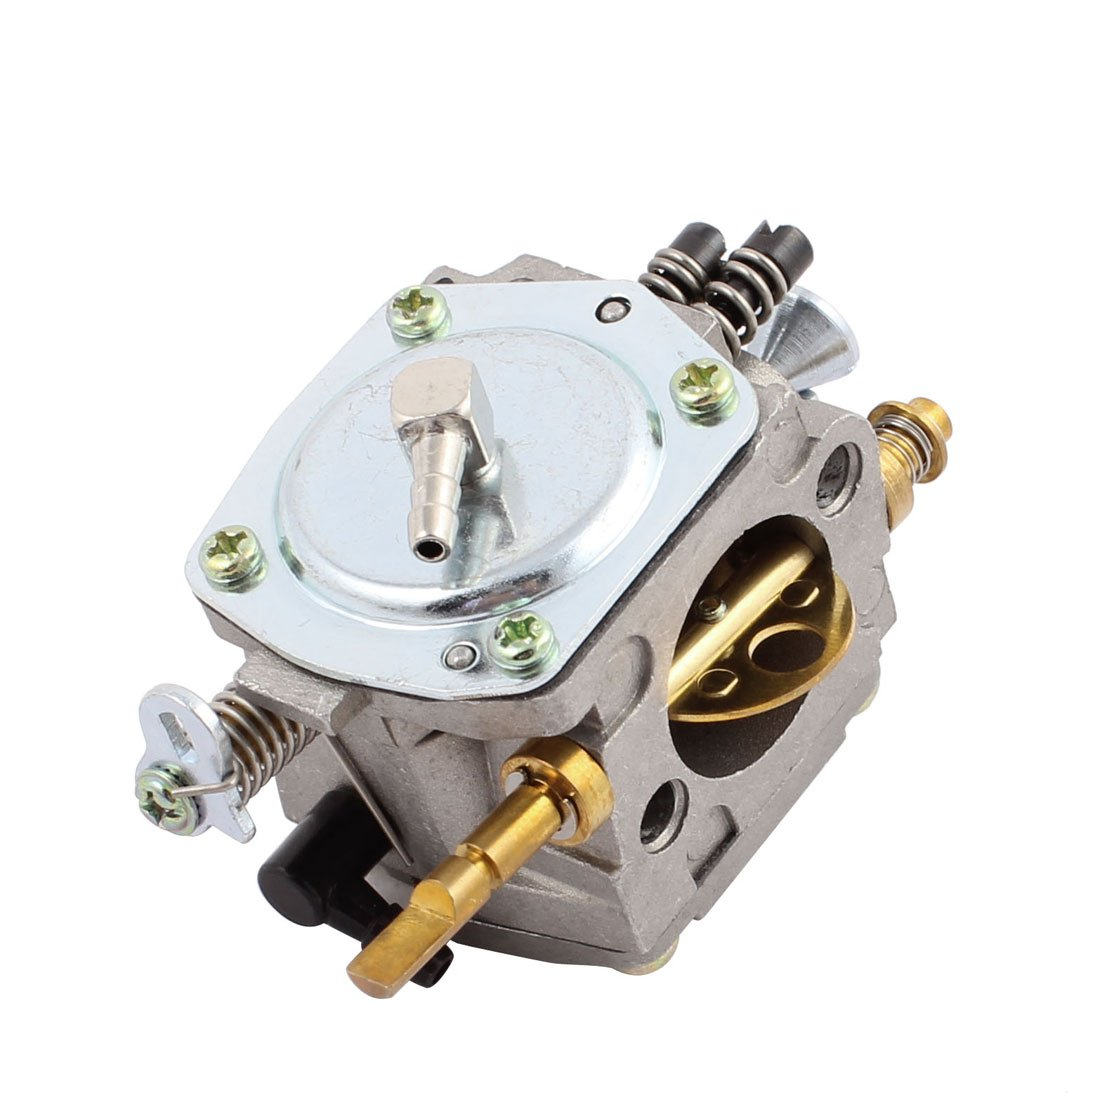 sourcingmap® New Carburetor for STIHL Chainsaw Parts Lawn Mower TS-400 Carburador Carb